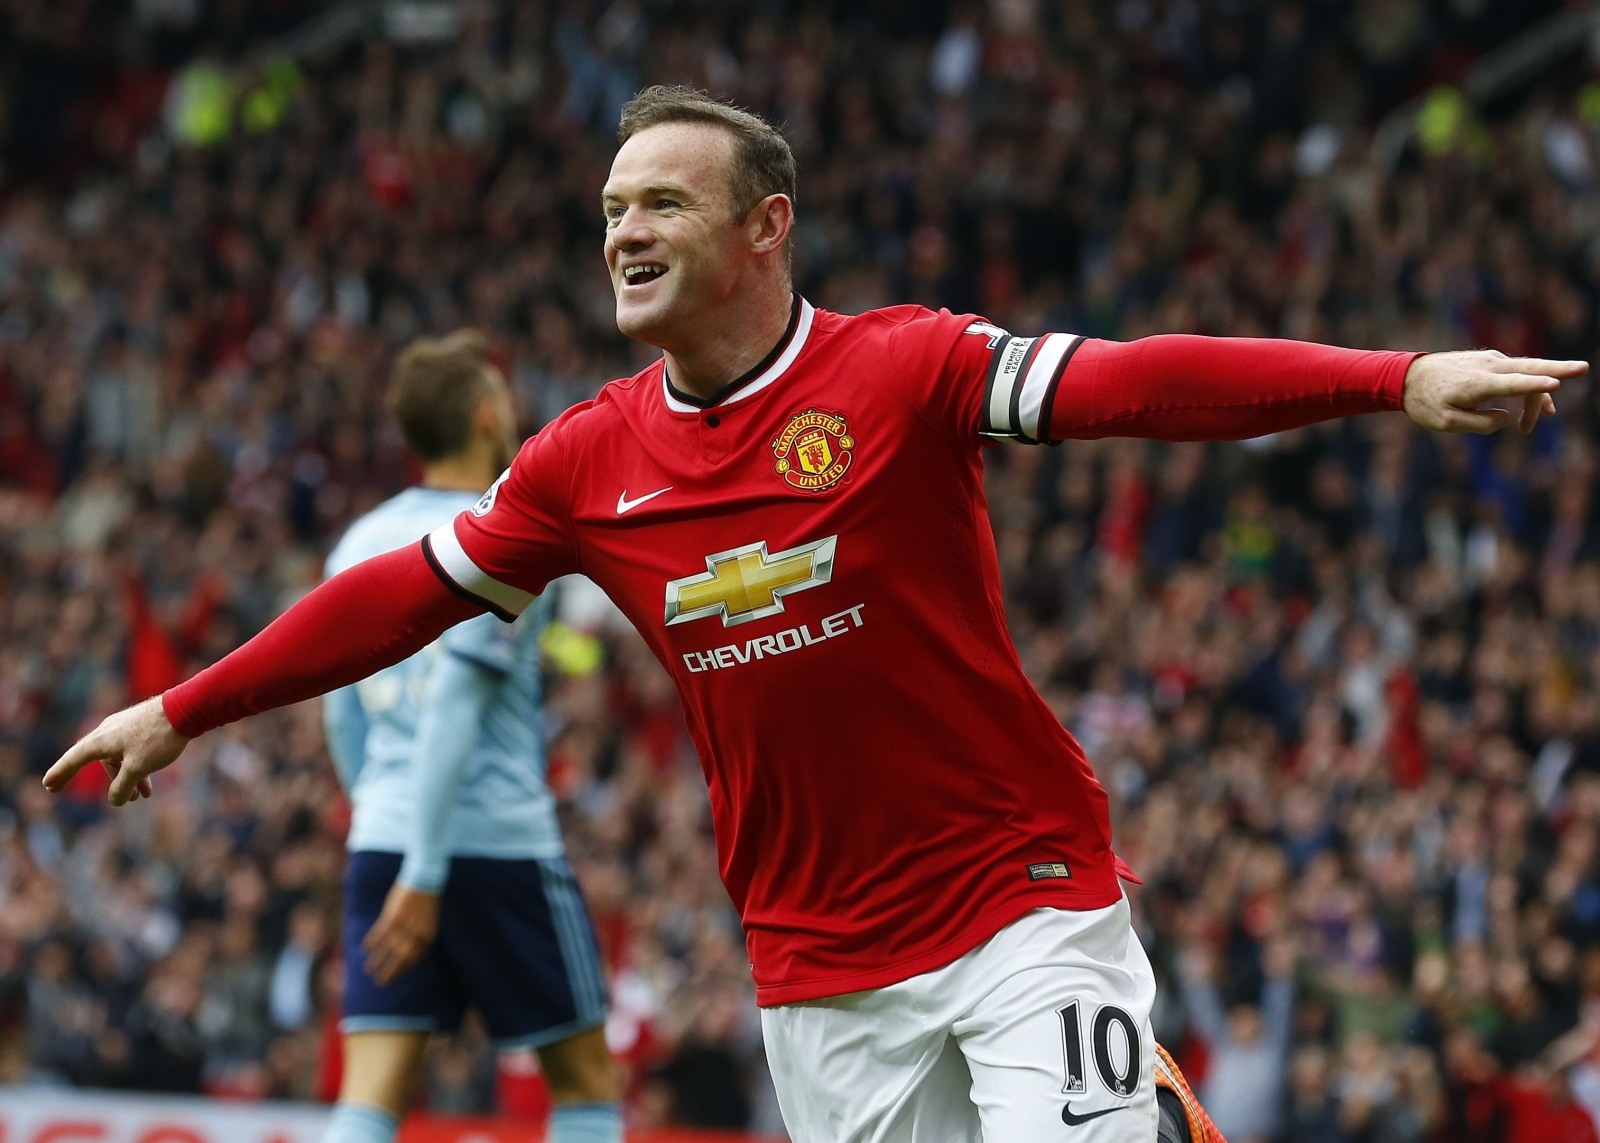 Wayne Rooney 10 Wayne Rooney is doubtful for the clash against Manchester City Getty